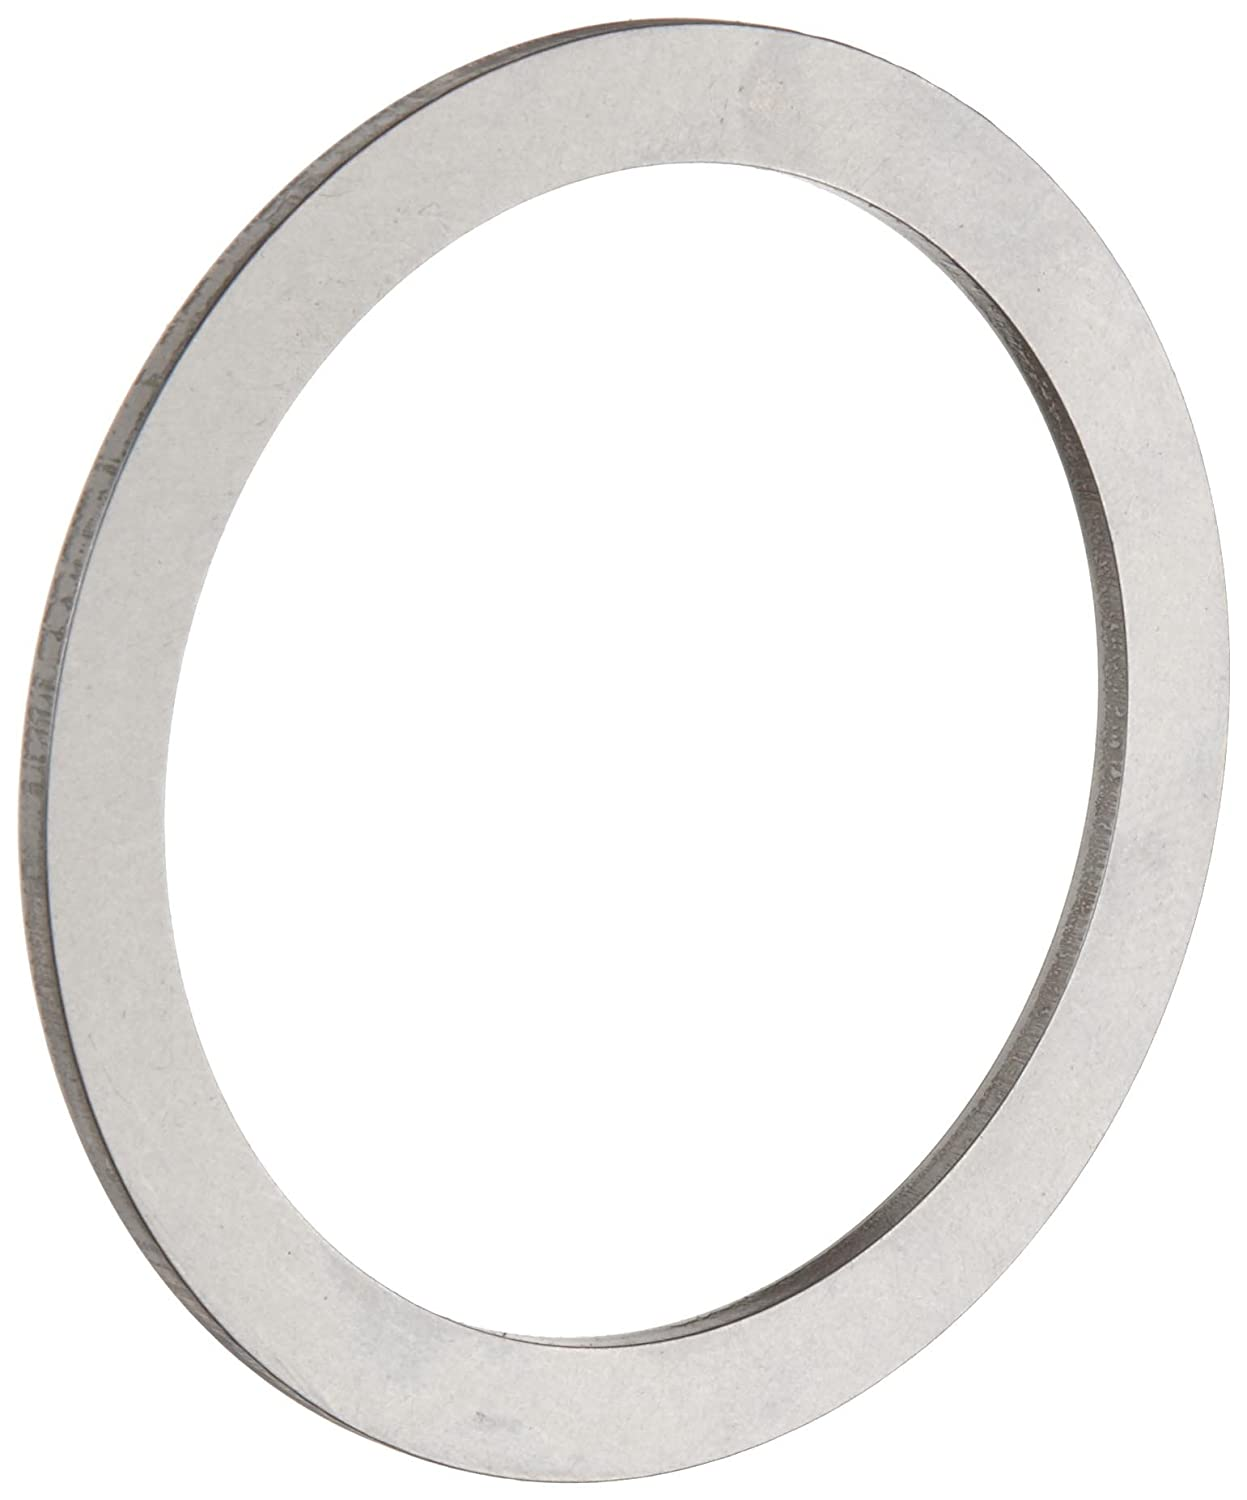 Koyo TRB-3244 Thrust Roller Bearing Washer Inch TR Jacksonville Mall Type In a popularity Open